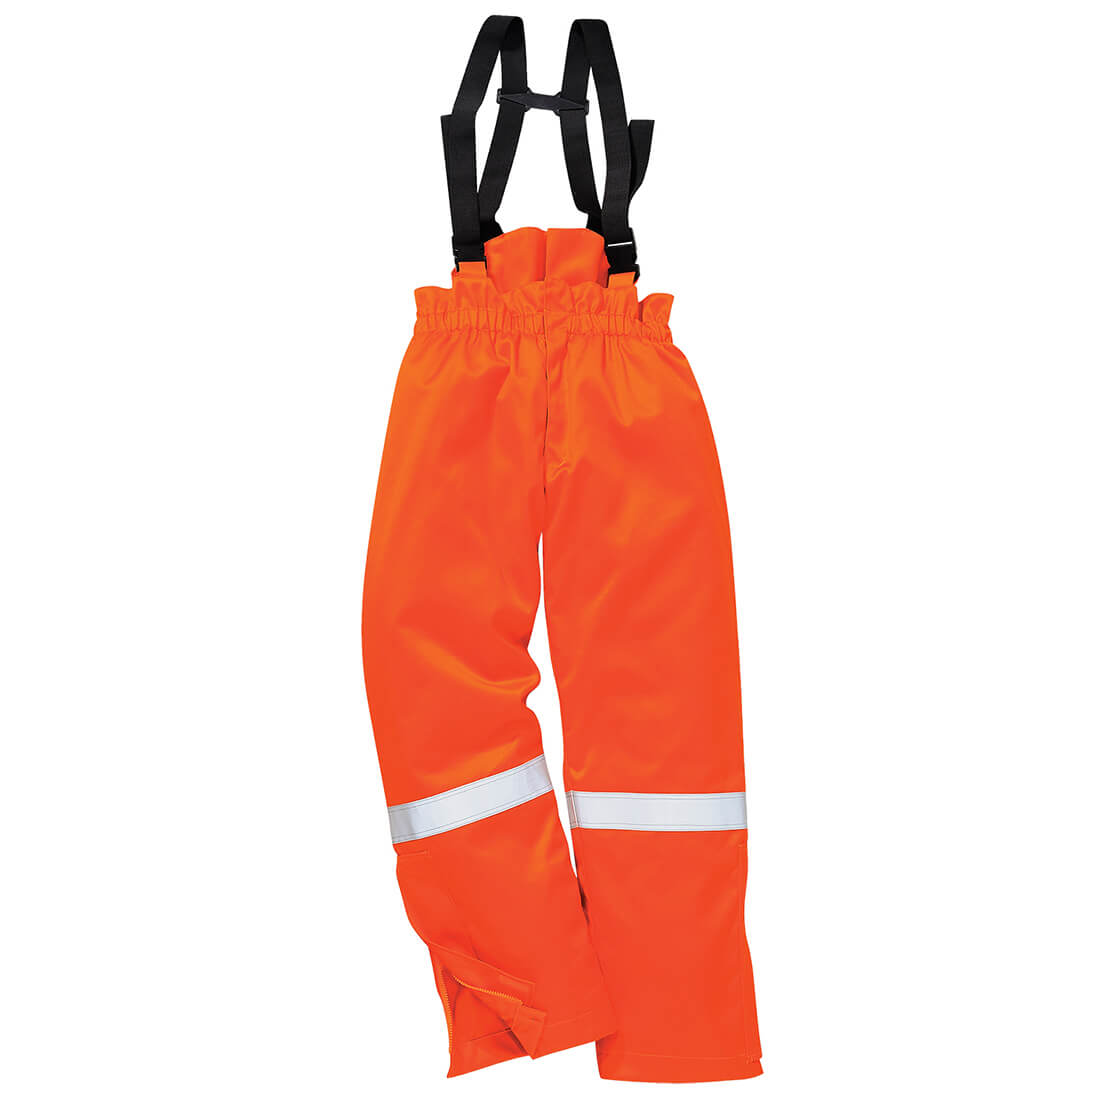 Image of Biz Flame Flame Resistant Antistatic Winter Bib & Brace Orange 2XL